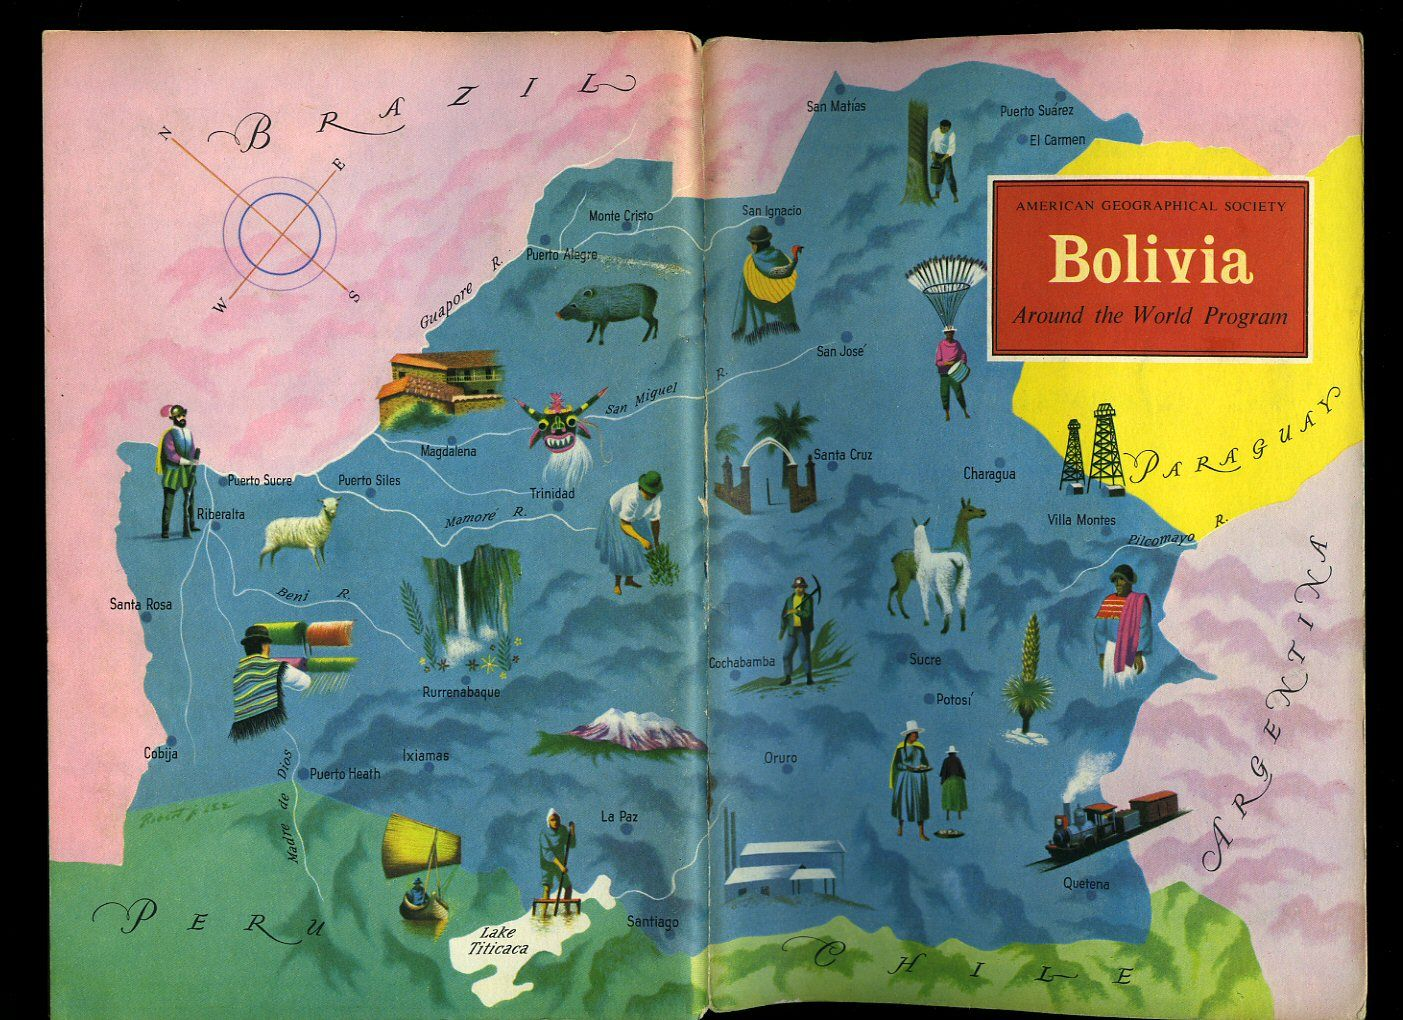 Bolivia american geographical society around the world program bolivia american geographical society around the world program vintage map book cover gumiabroncs Image collections